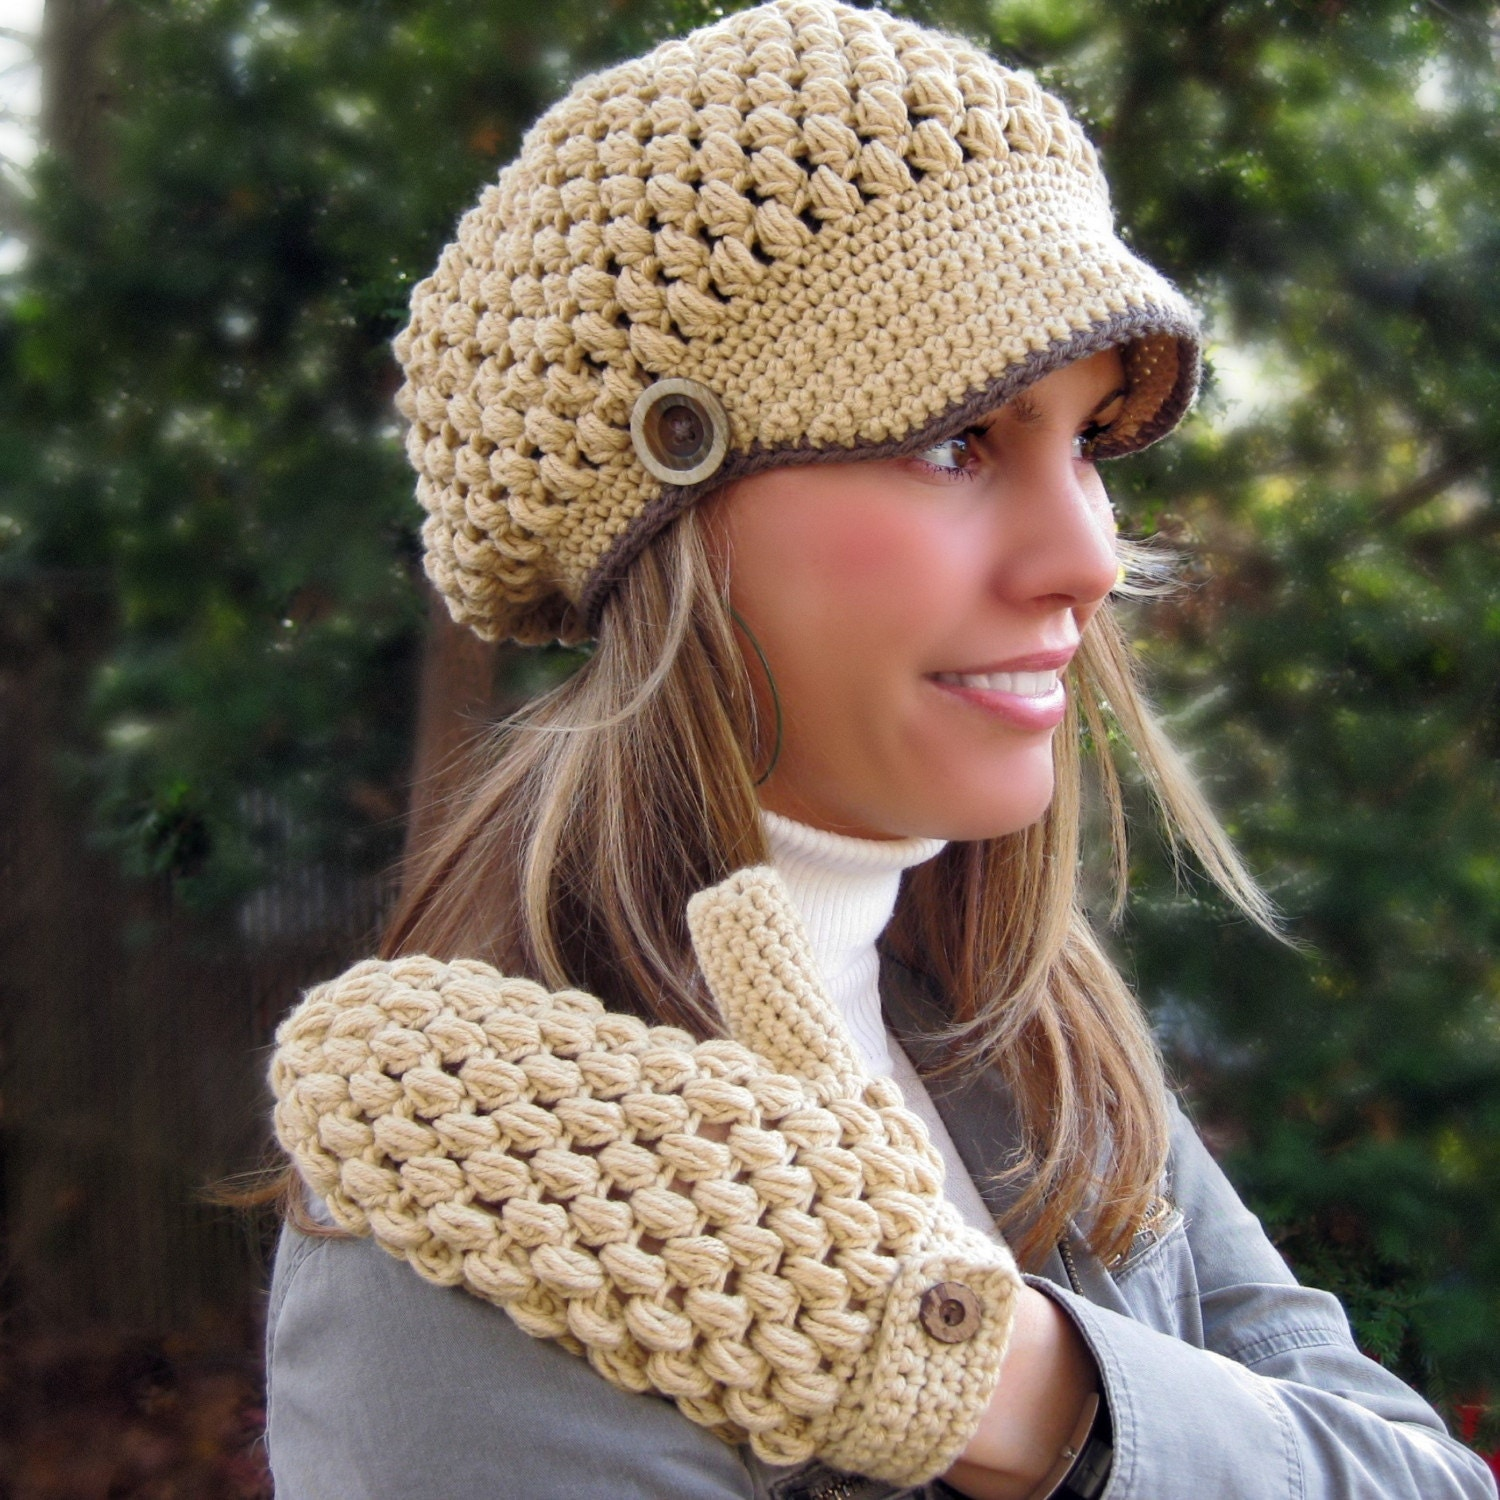 Crochet Patterns Etsy : Items similar to Lalita Newsboy Hat Crochet Pattern on Etsy